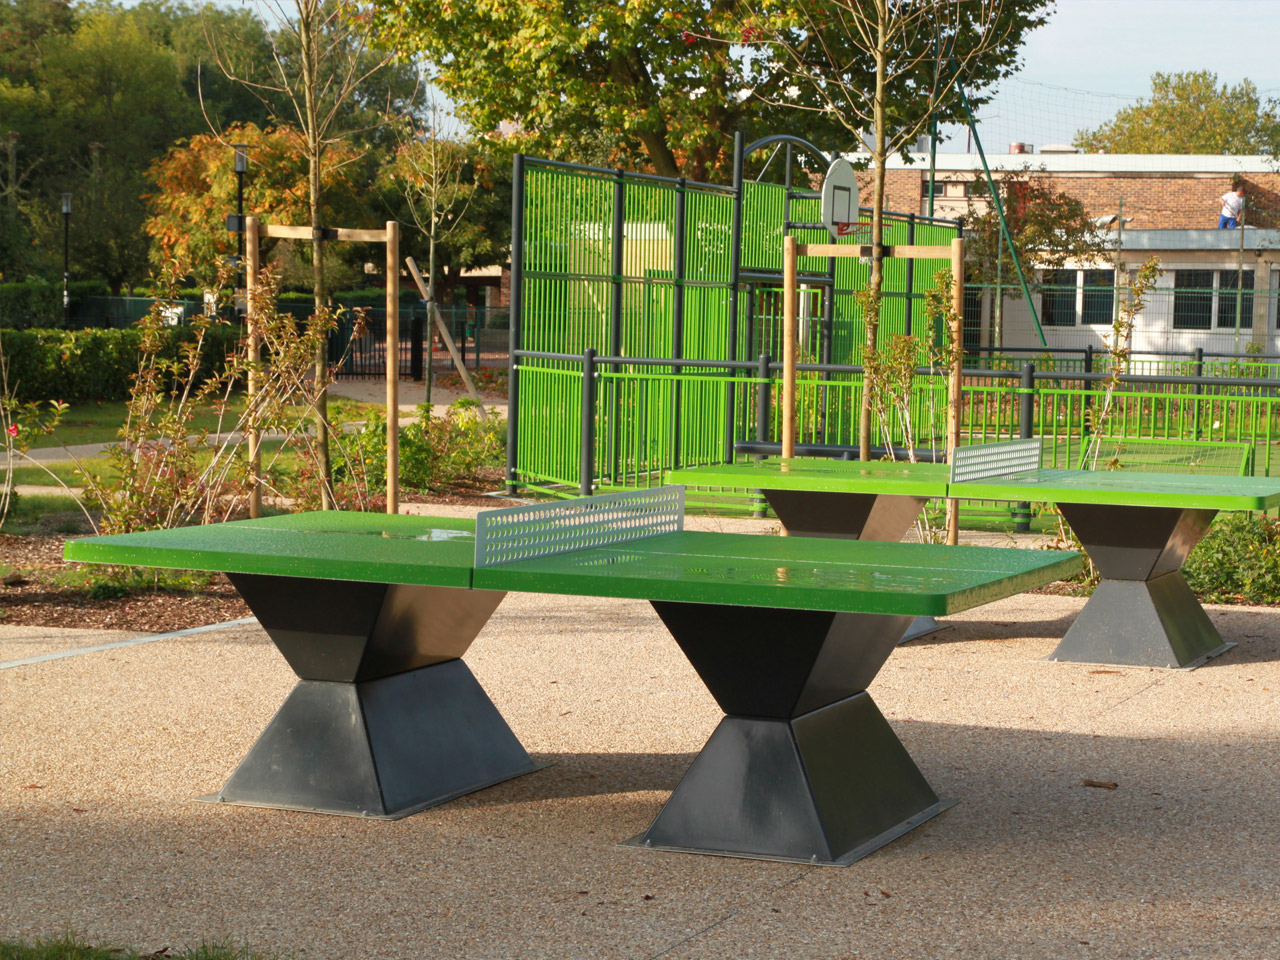 Table de ping-pong en resine